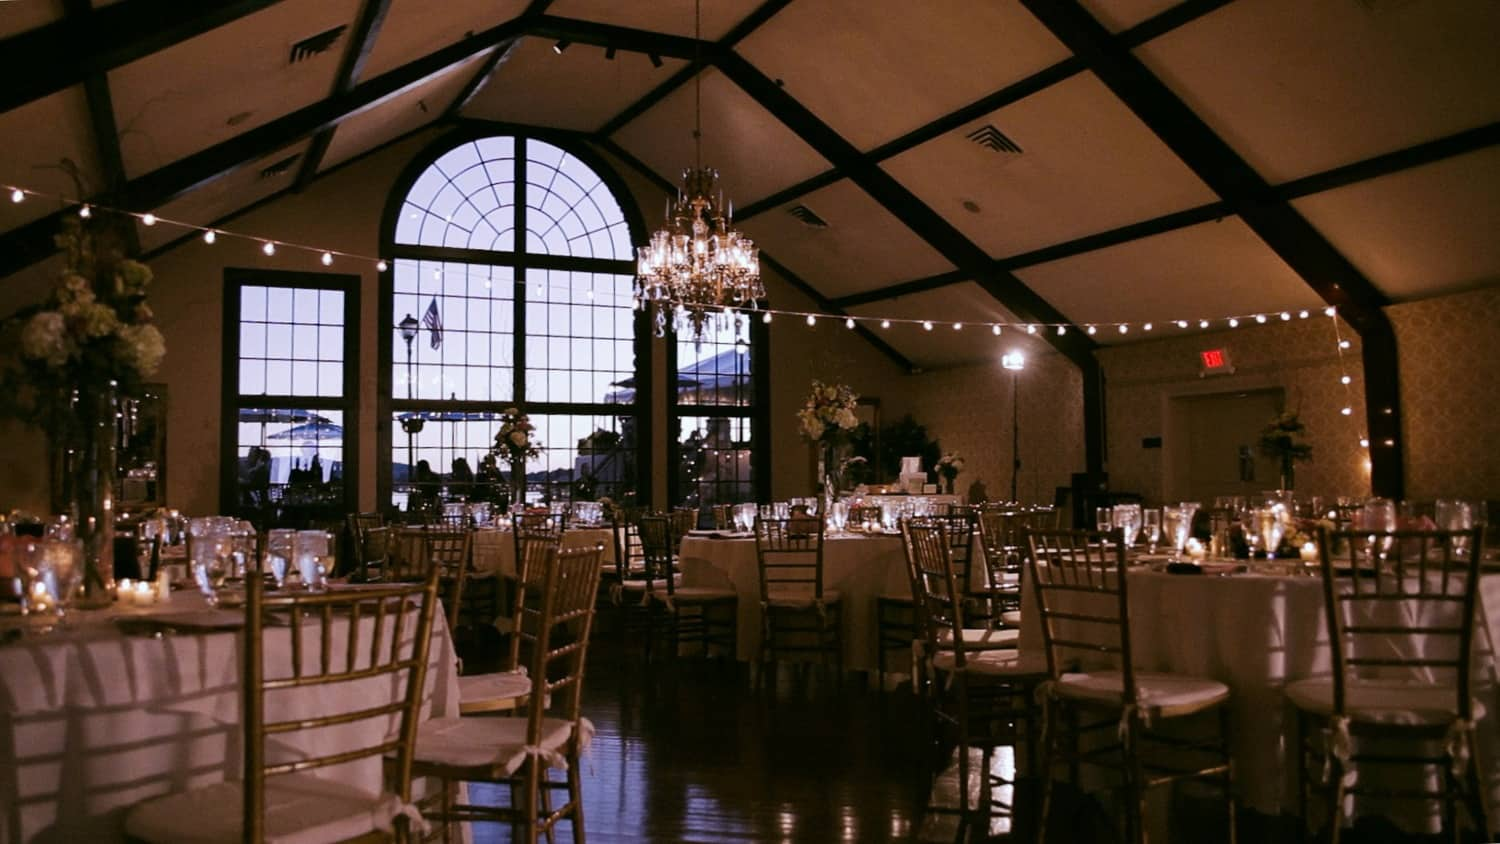 Axel_Marrero_Studios_New_Jersey_NJ_Wedding_Videographer_Cinematographer_Video_Lake_Reception_Cafe_Lights